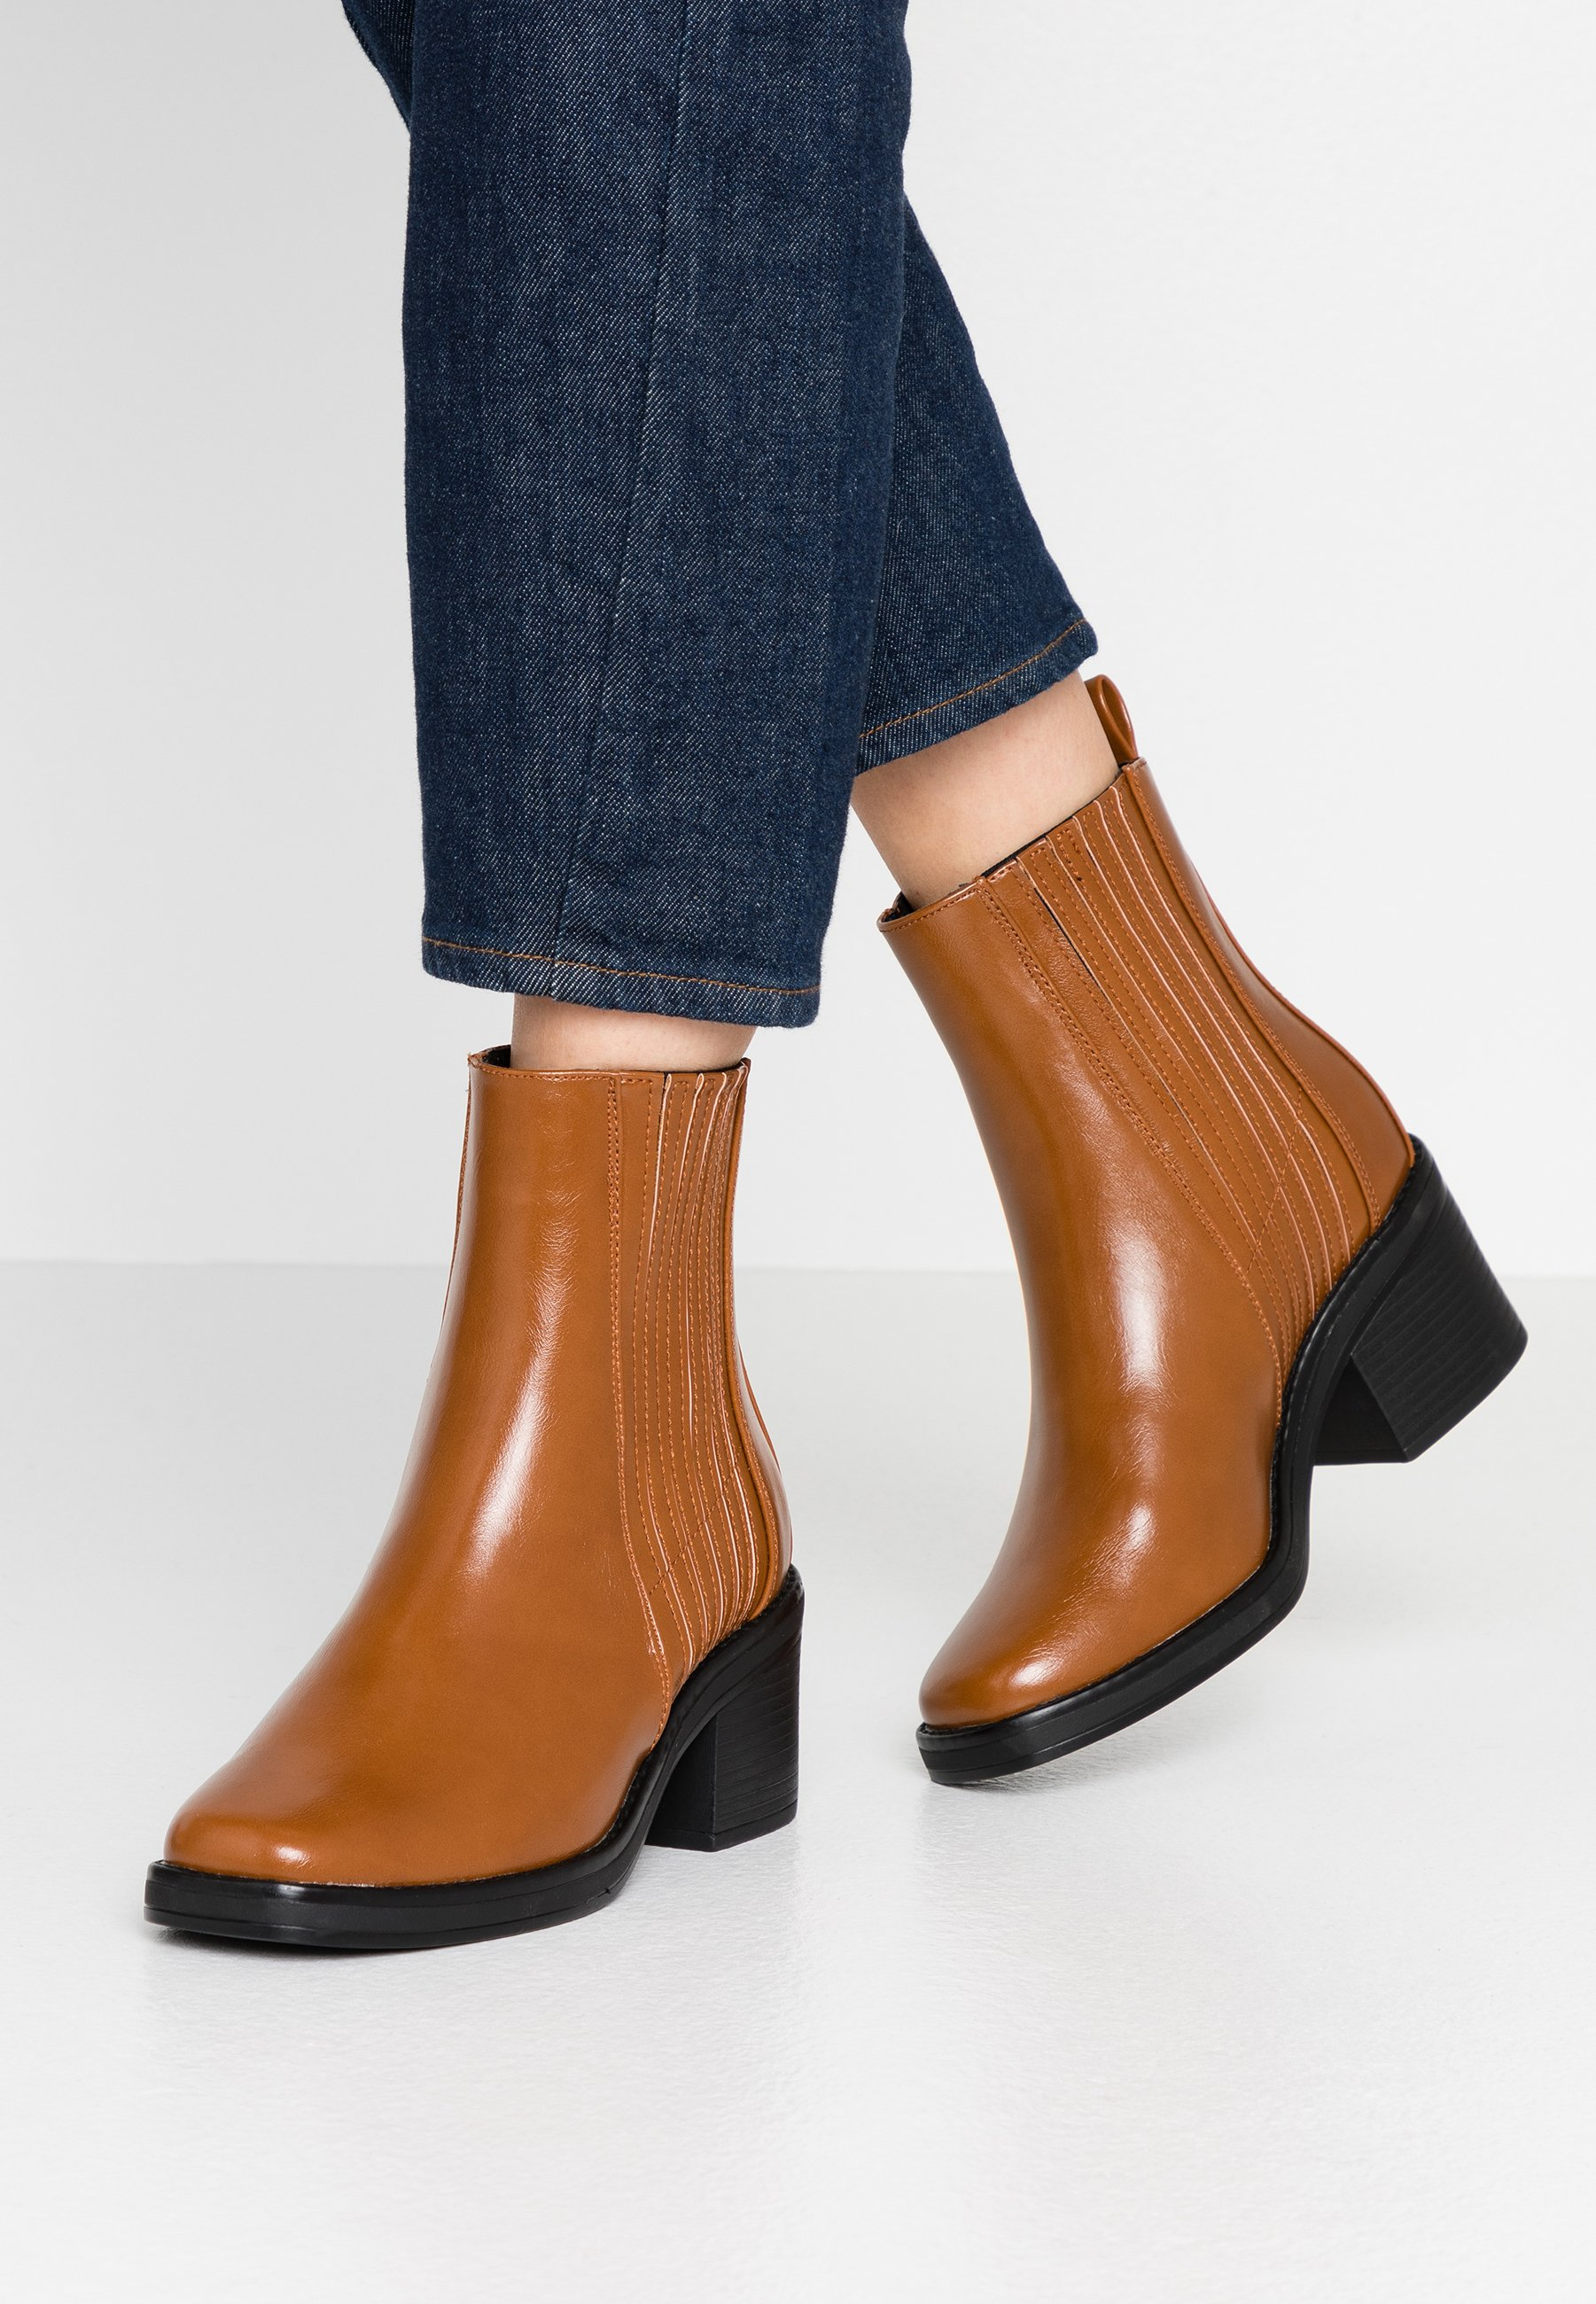 Even&Odd Classic ankle boots - cognac